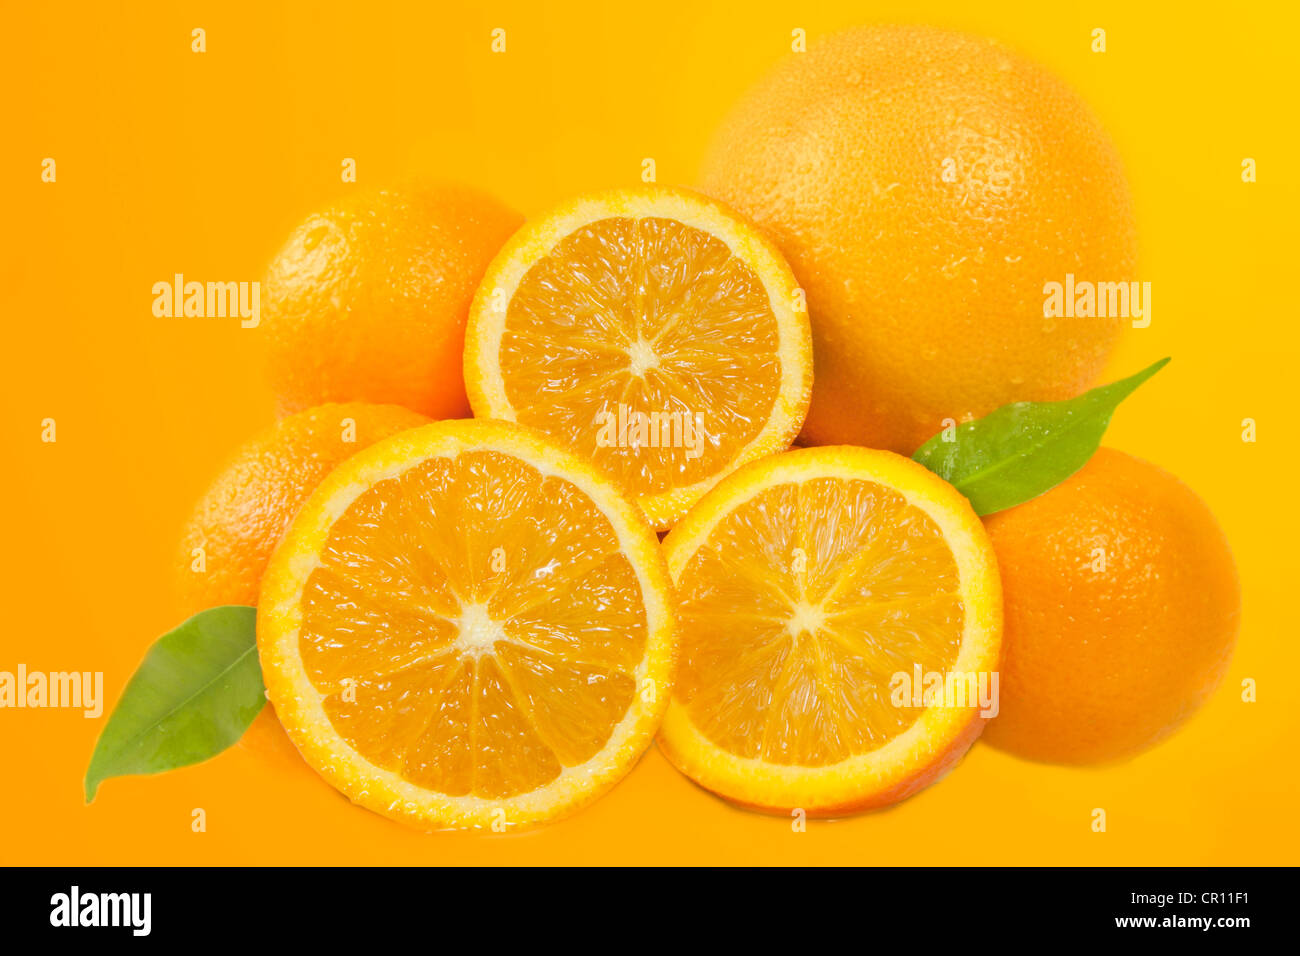 Composition of fresh oranges with green leaves background - Stock Image